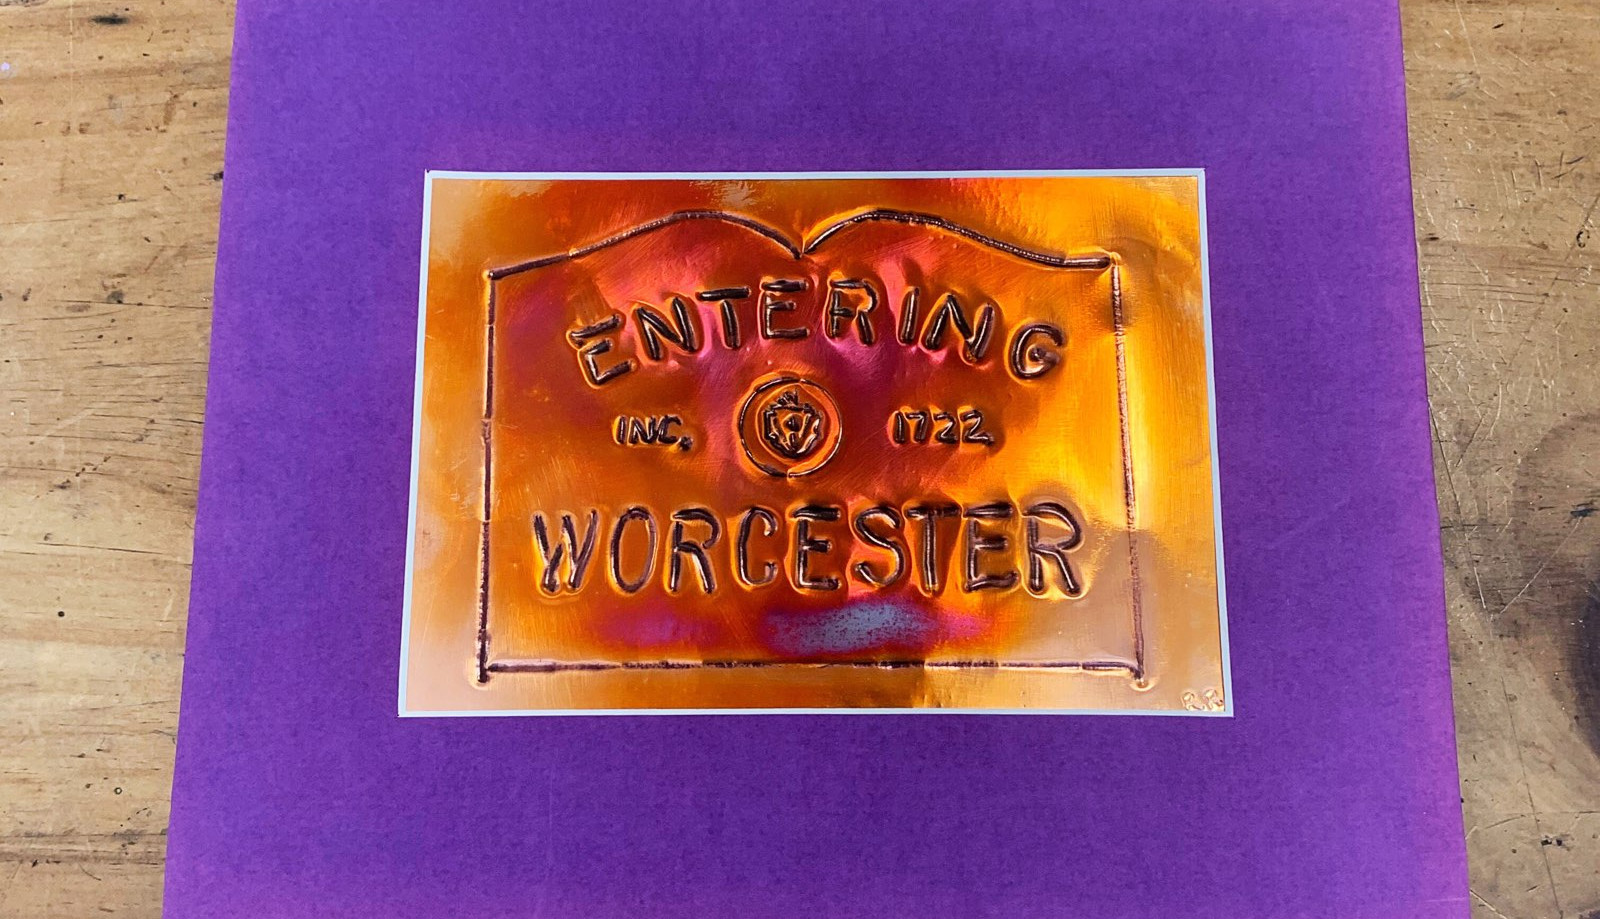 Entering Worcester